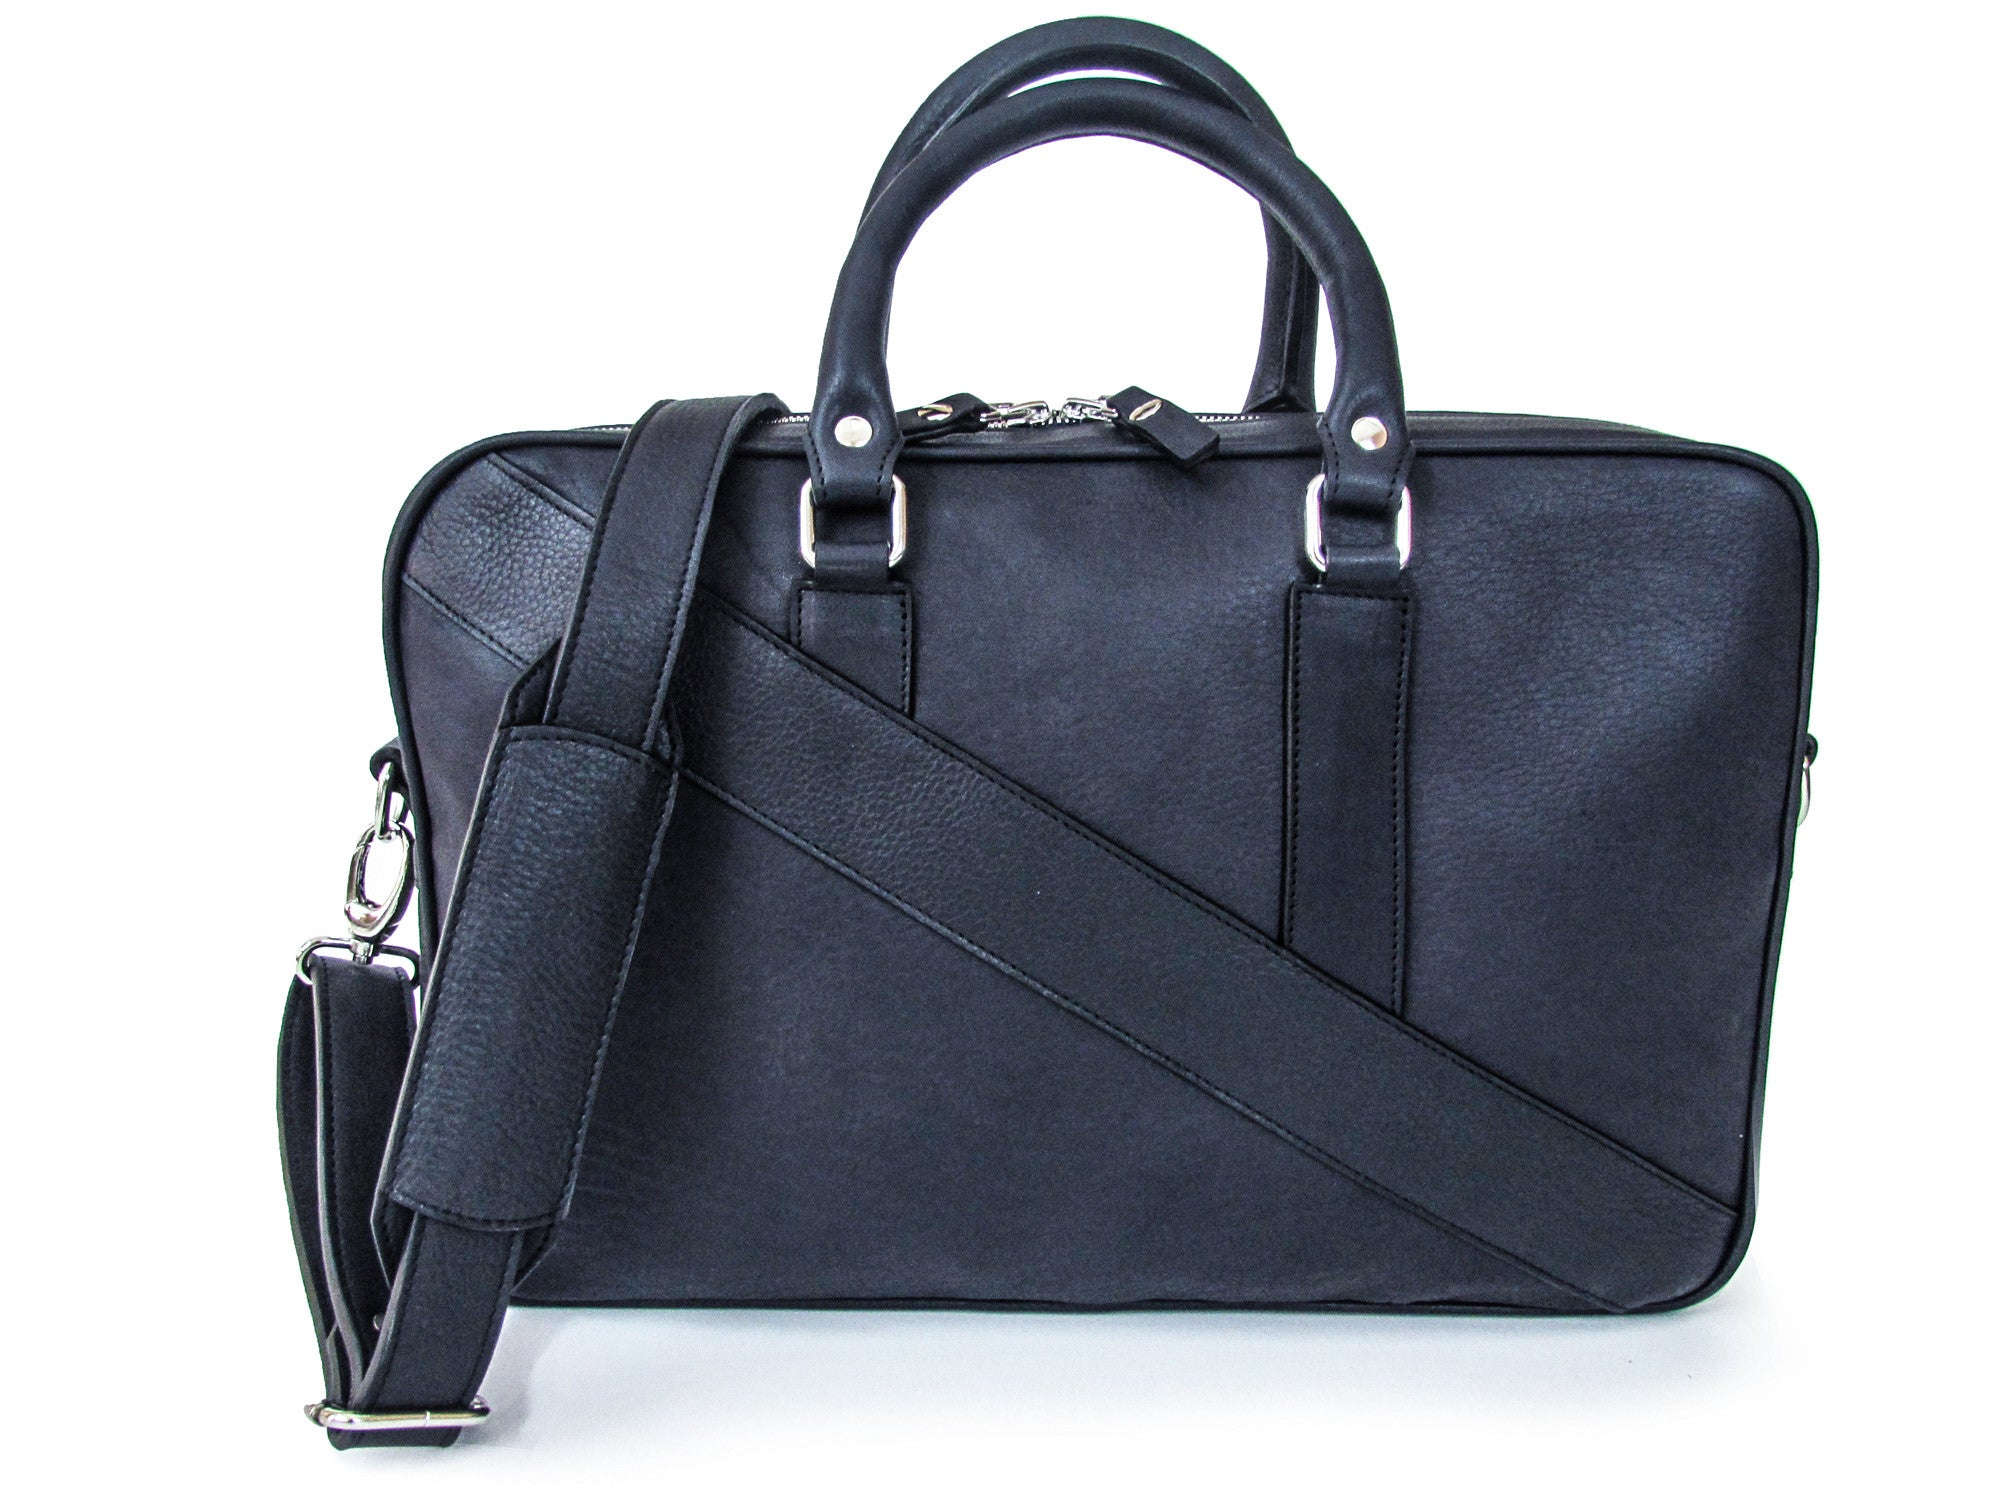 The Dollar Gent Briefcase in Dark Navy Blue is the perfect leather briefcase for the office and business and conveys a sporty and modern look